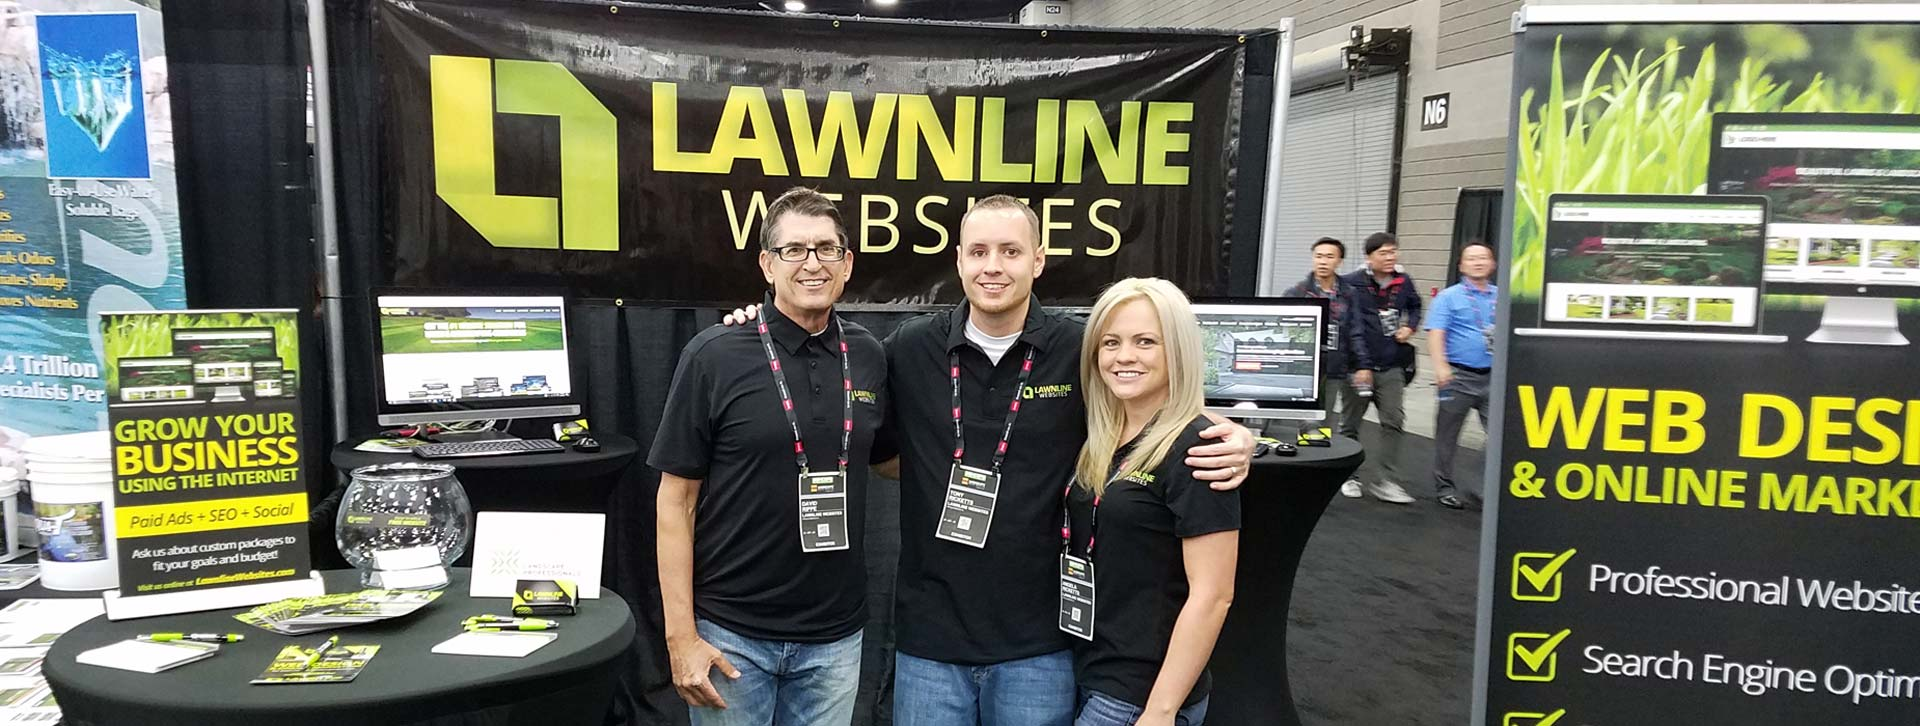 Tony, Angela, & David of Lawnline Websites at GIE+Expo in Louisville, KY.